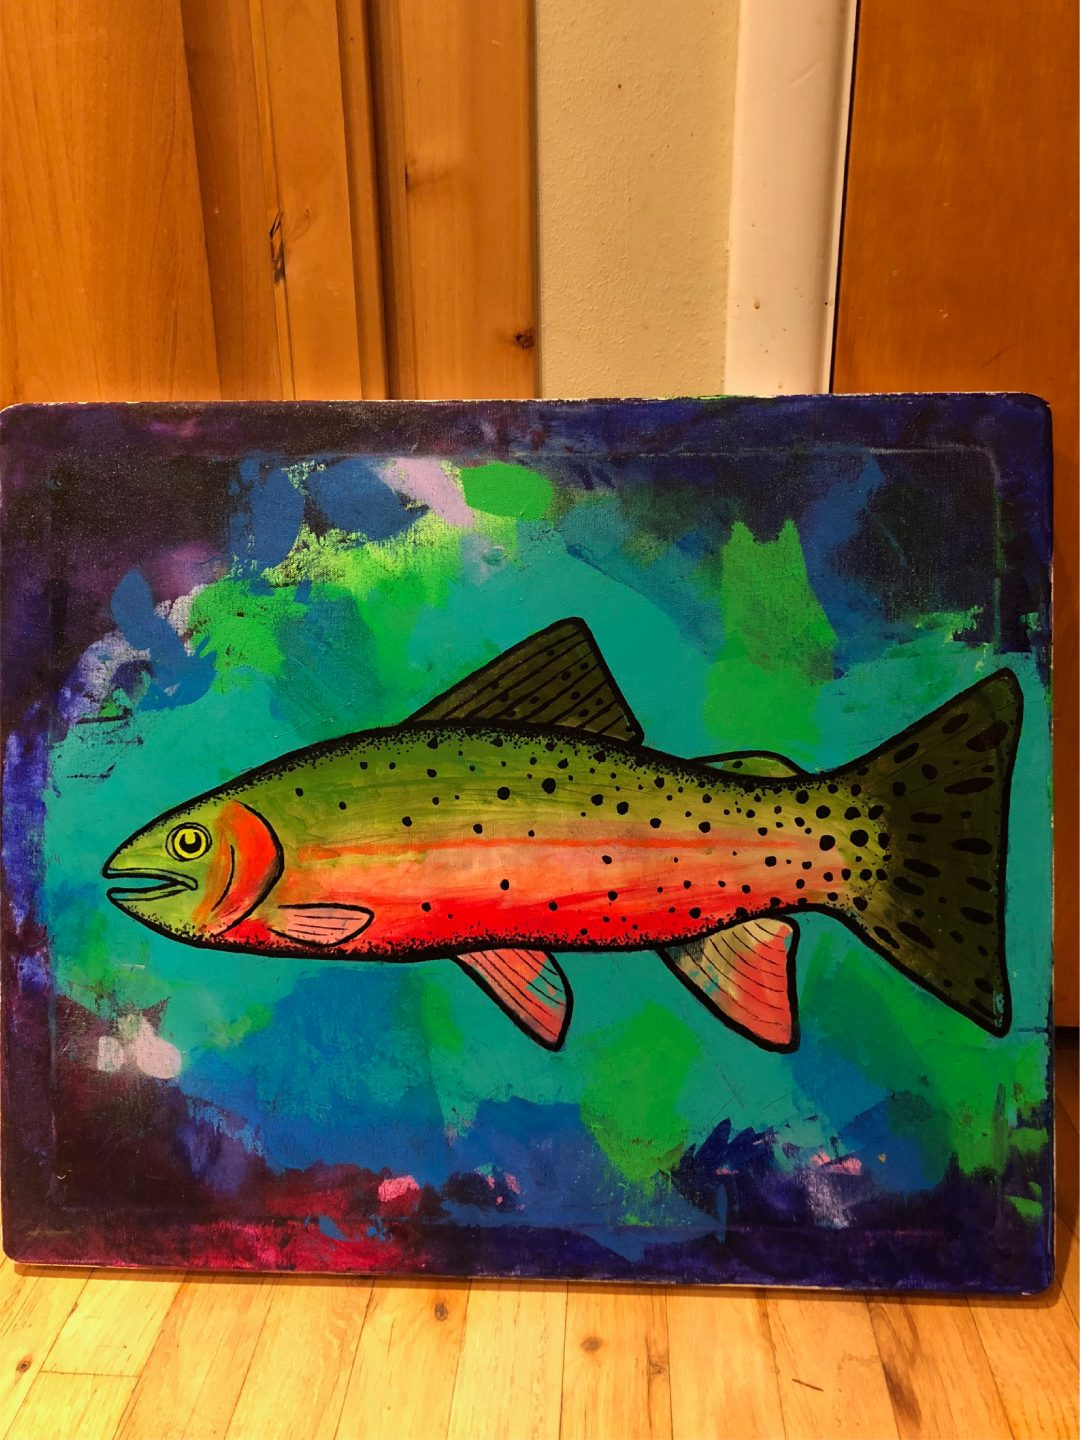 Painting of a Cutthroat Trout